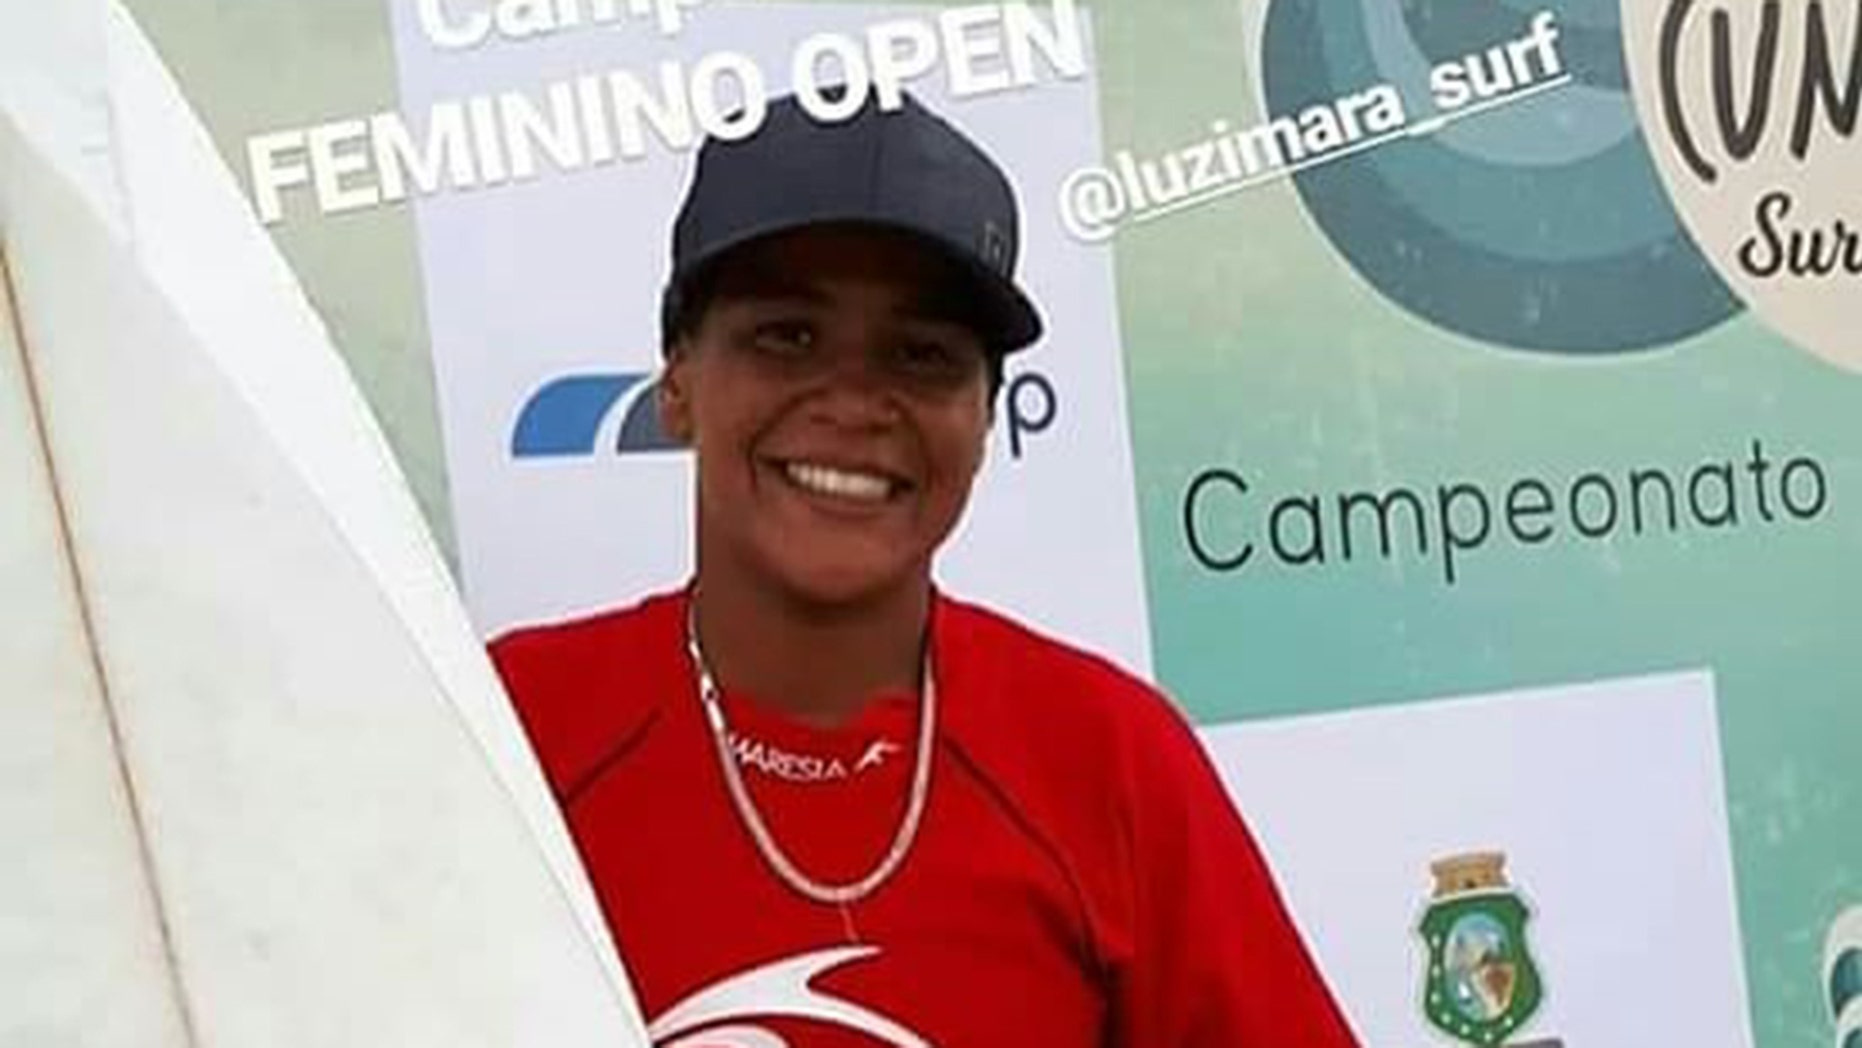 Brazilian surfer Luzimara Souza, 23, died after she was struck by lightning while training at a beach in central Brazil.